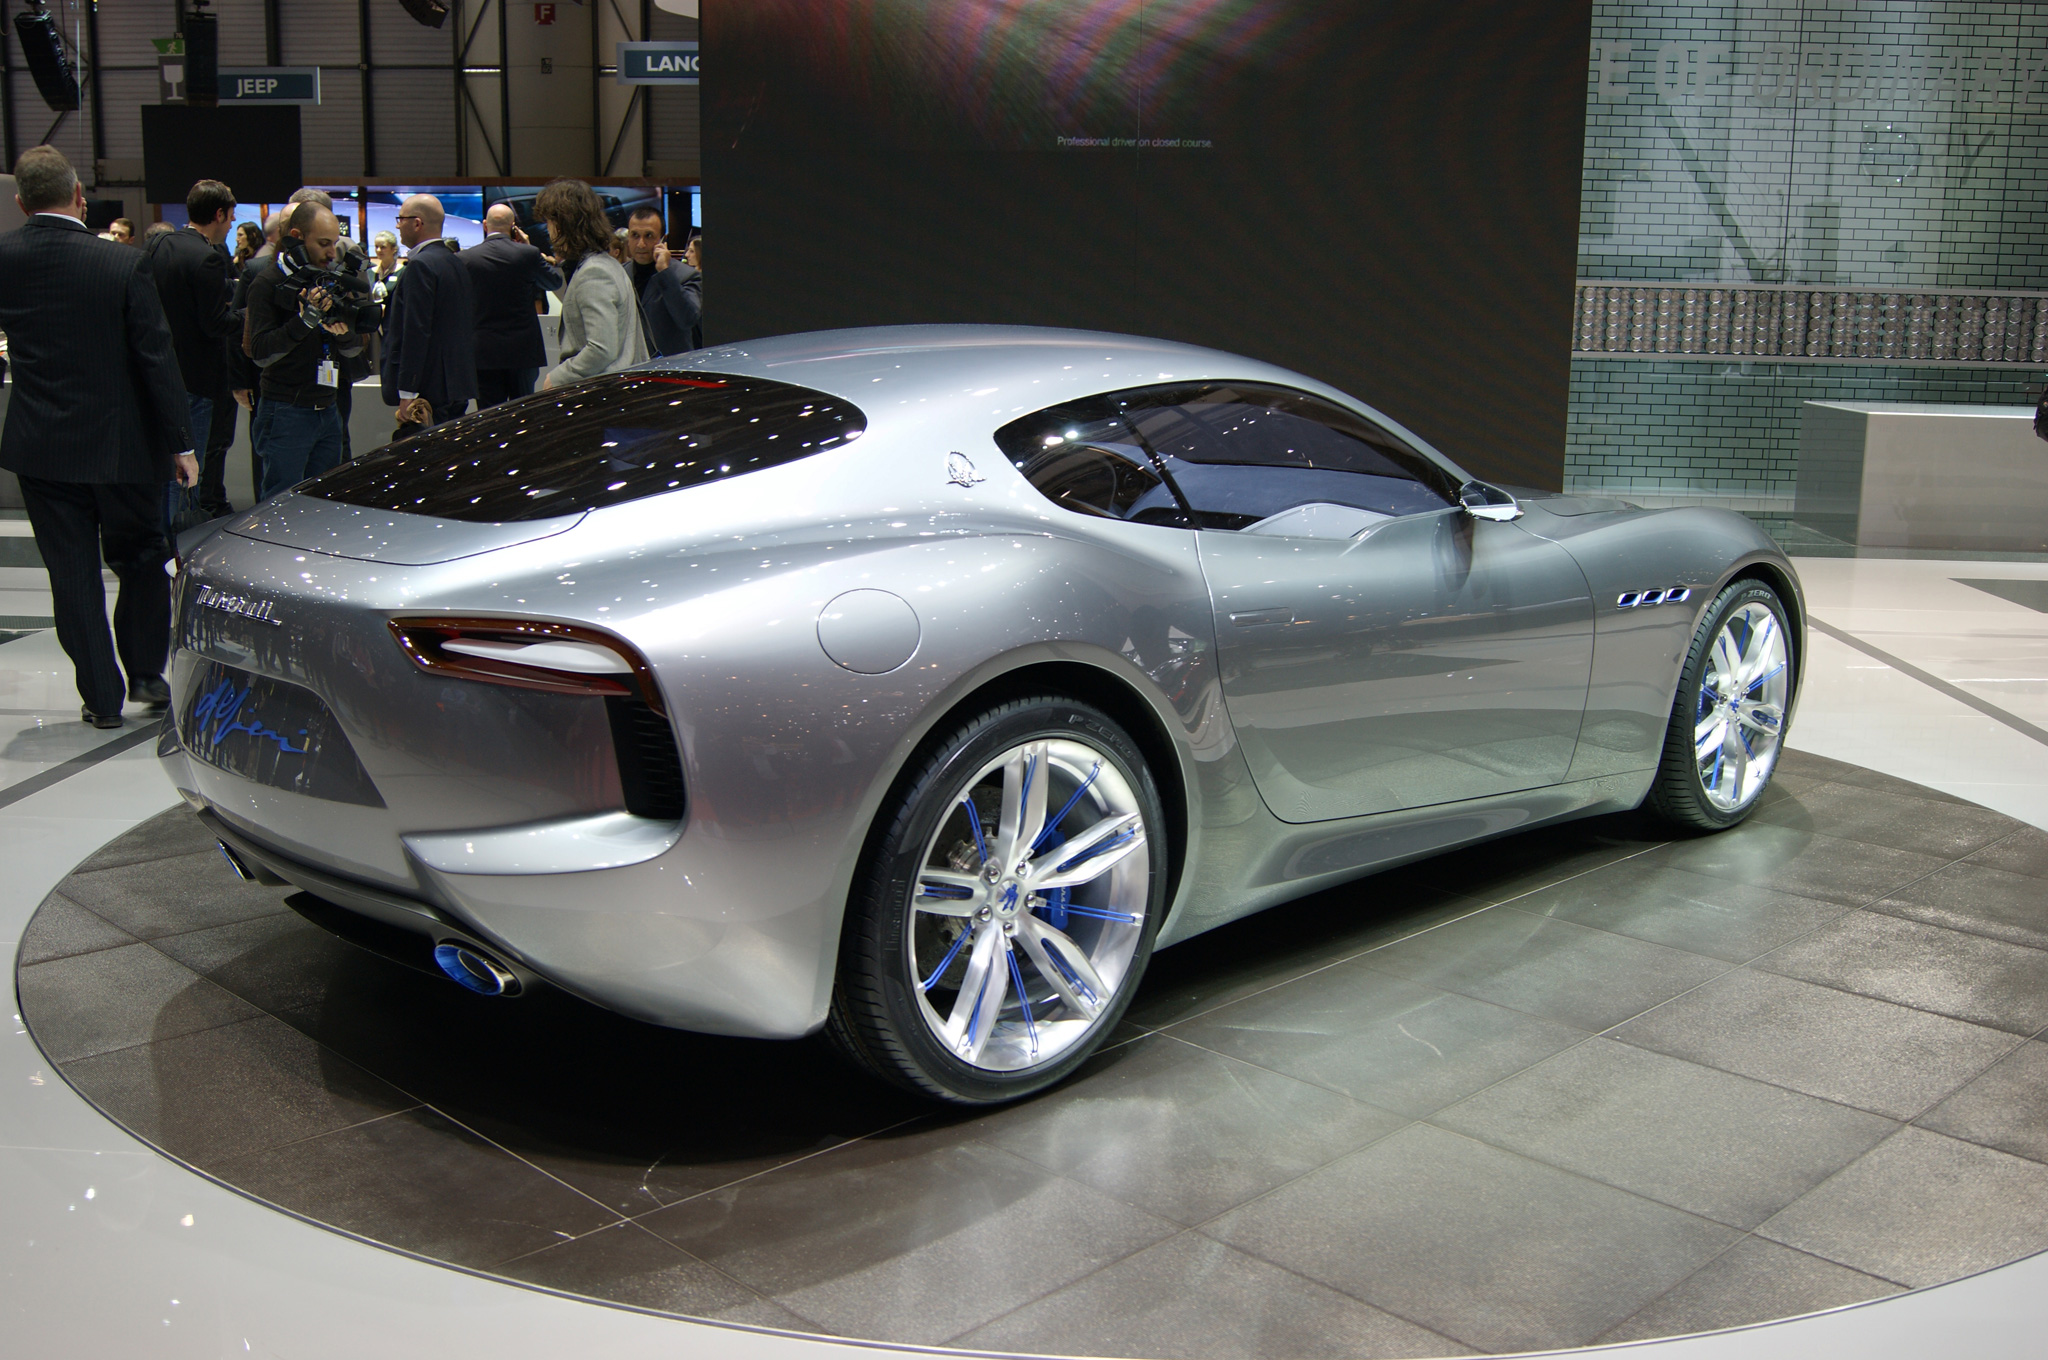 TOTD: Chrysler's Big Plan - What Are You Most Looking Forward to?